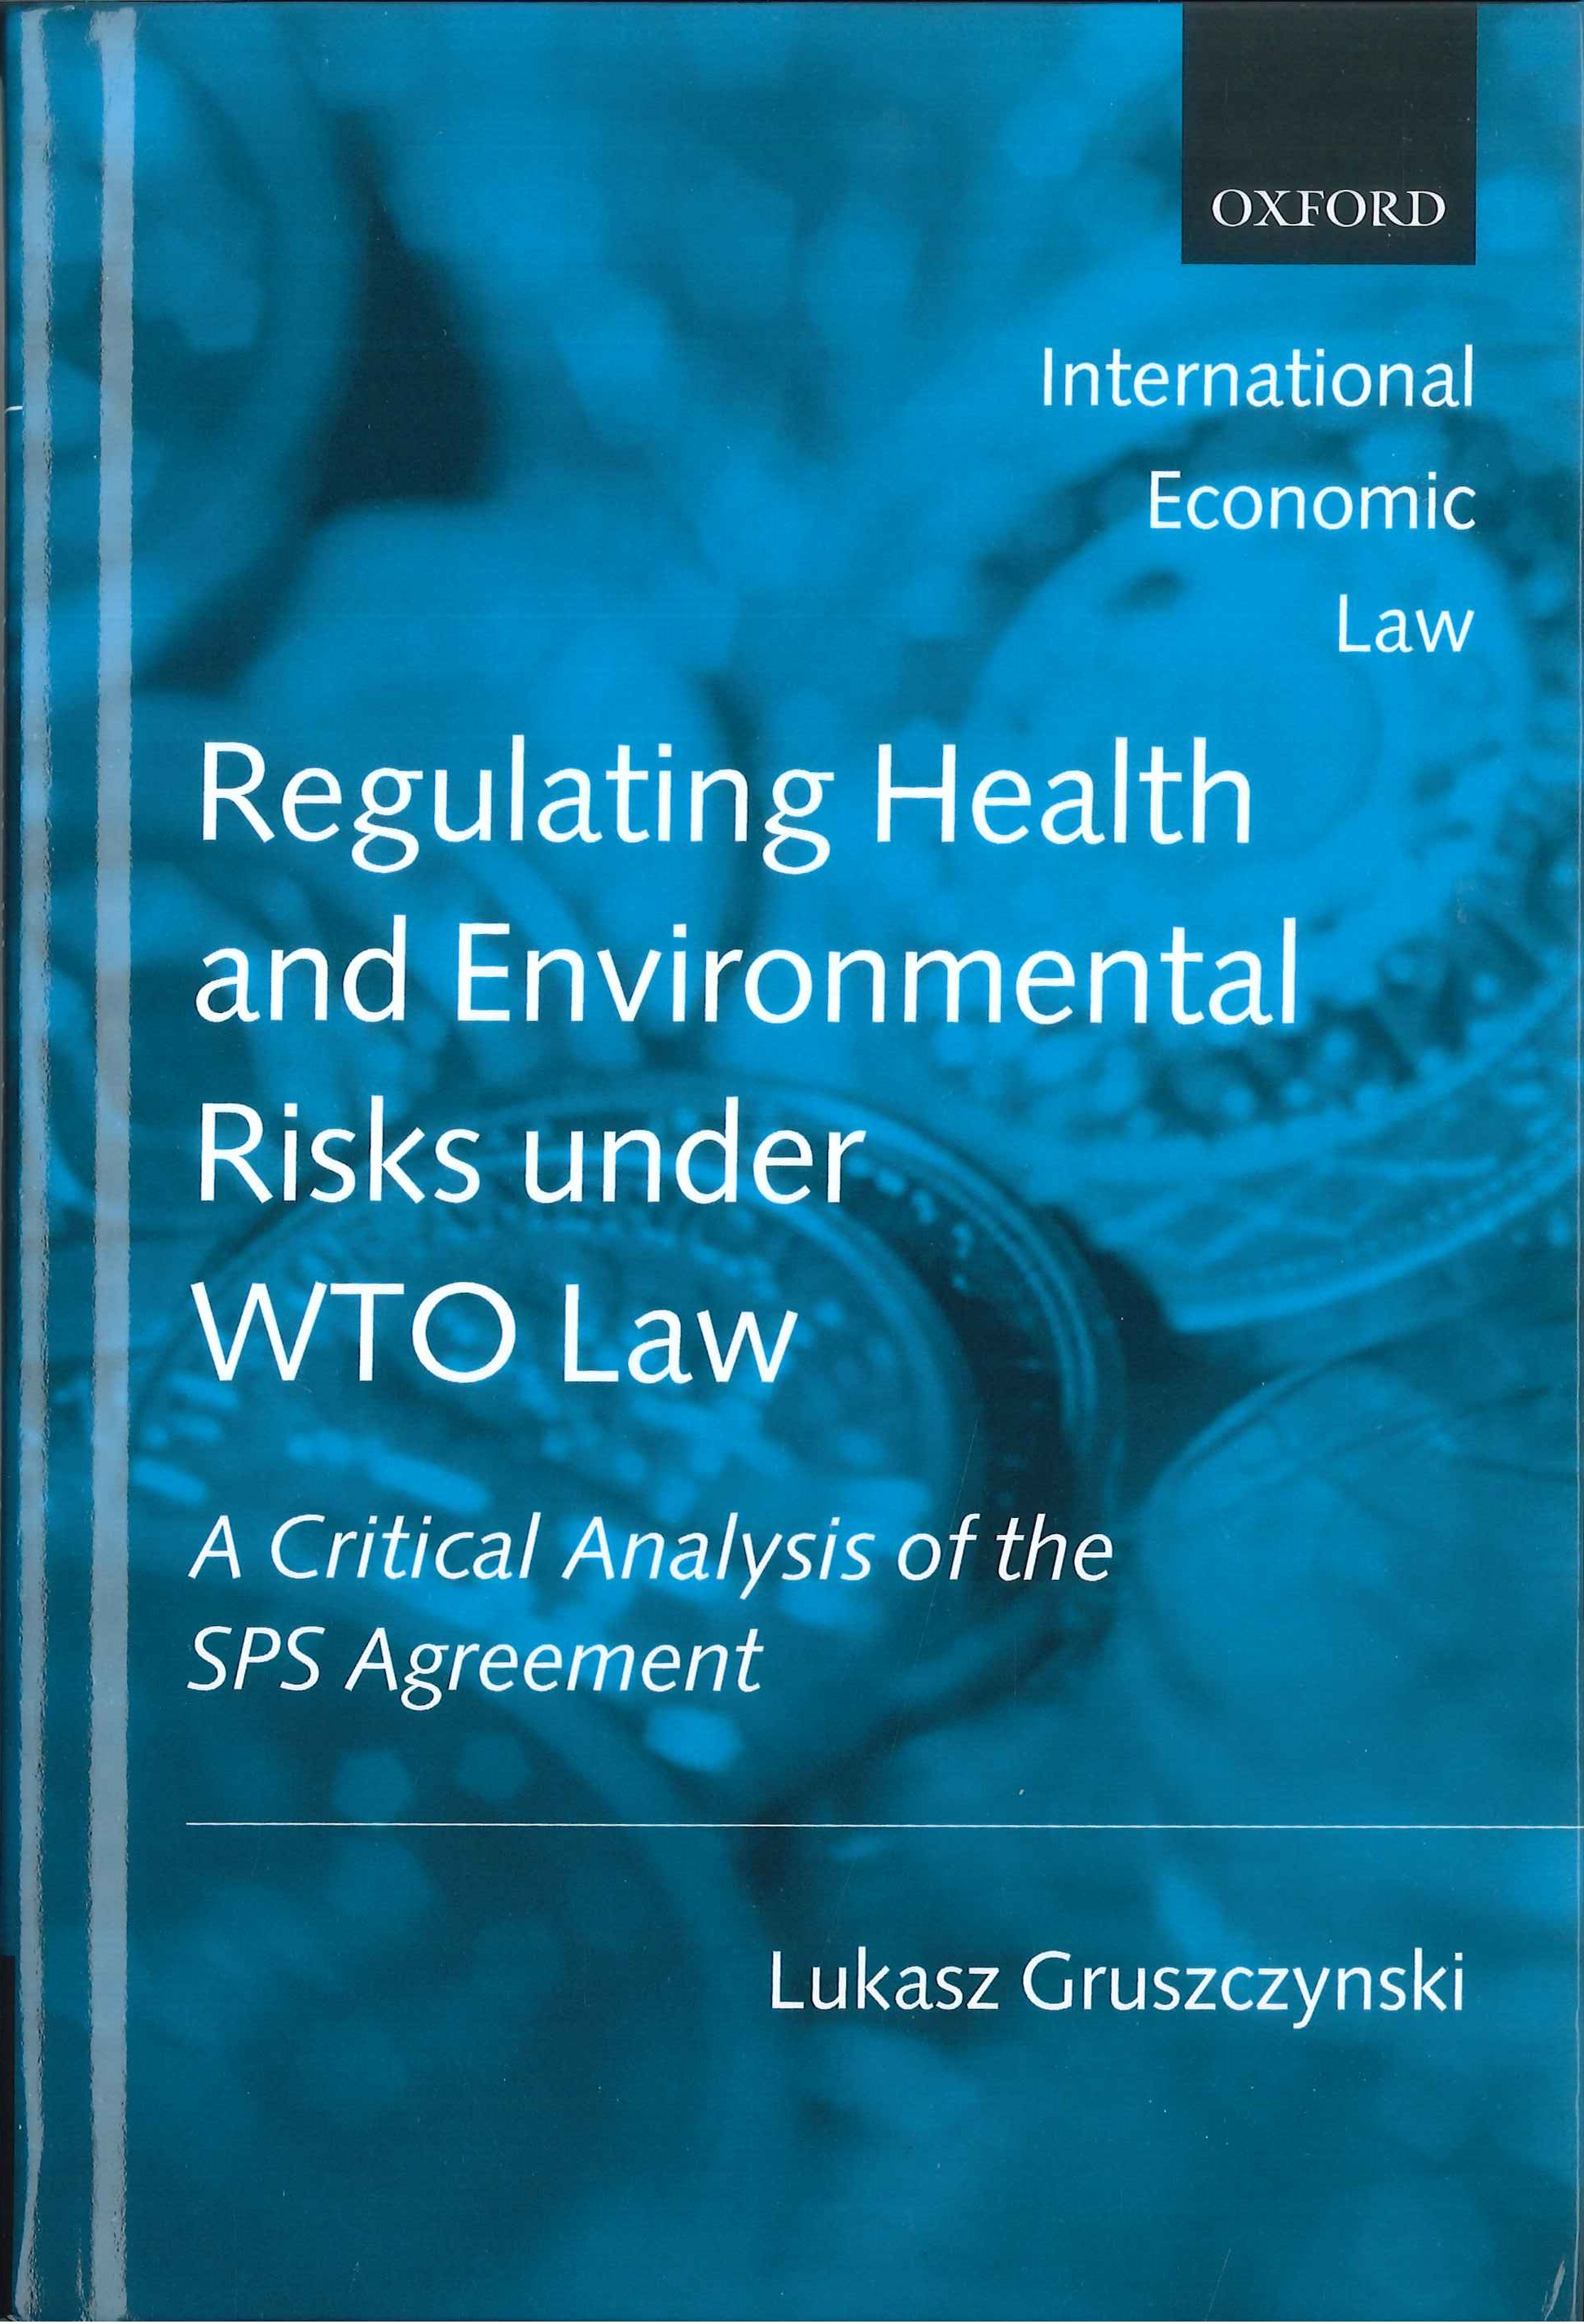 Regulating health and environmental risks under WTO law:a critical analysis of the SPS agreement